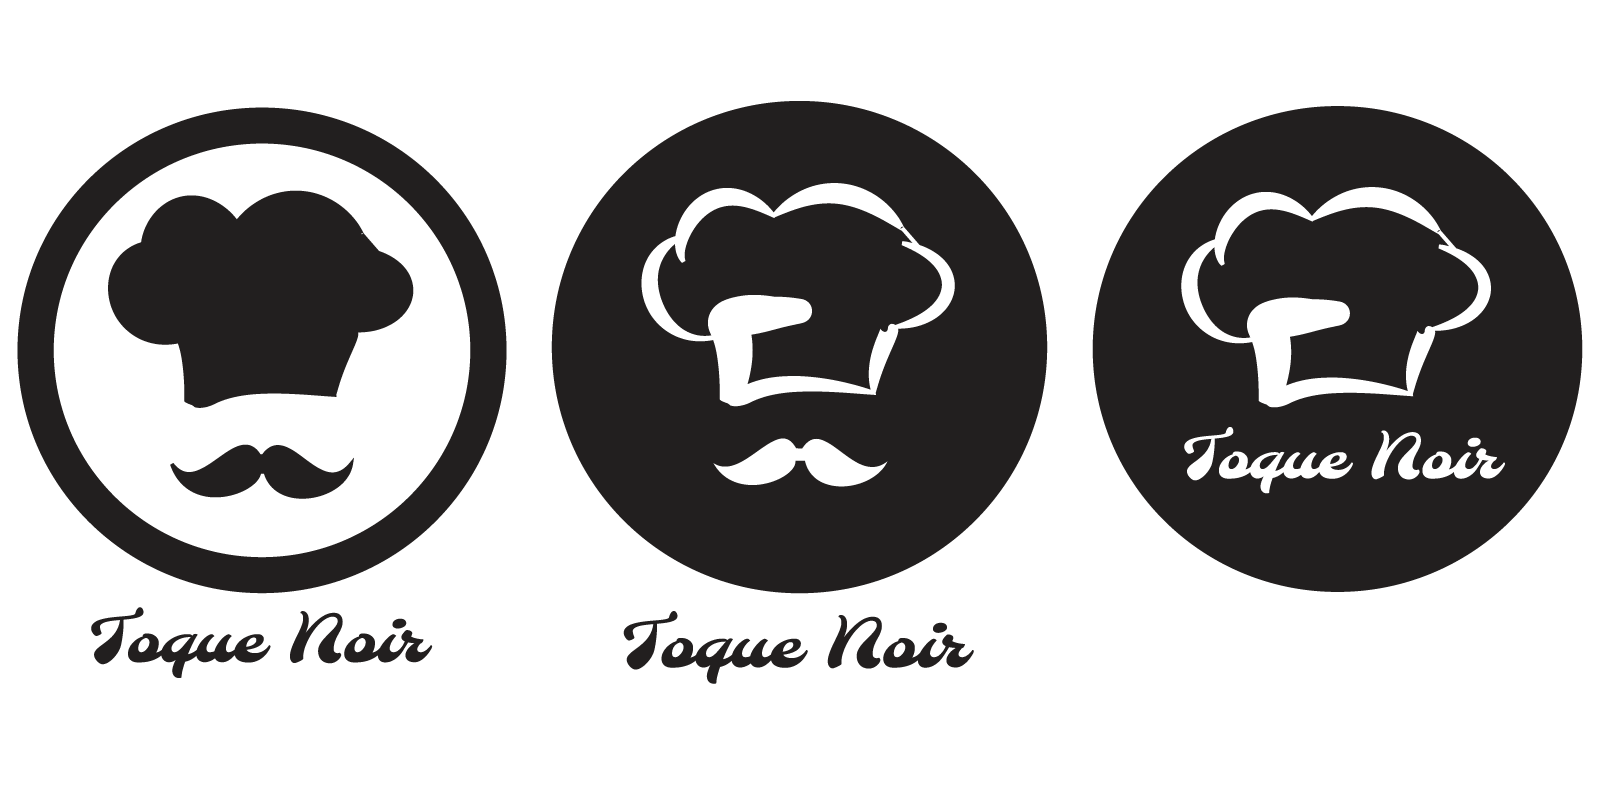 lady chef logo design ideas - photo #24